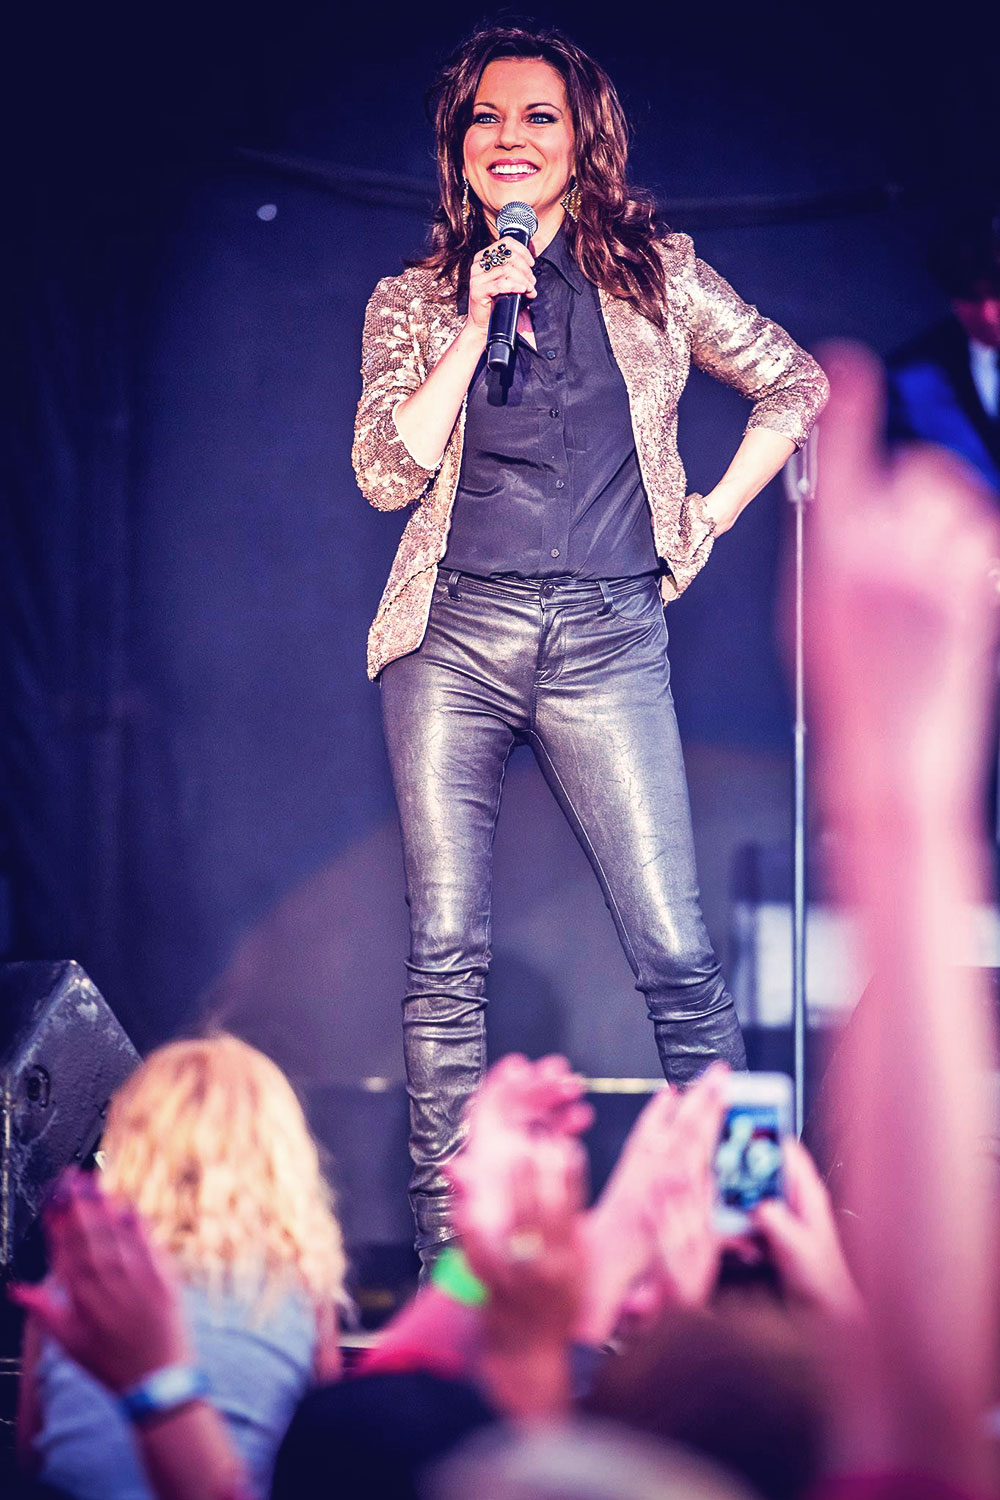 Martina McBride performs at Hawkfest 2014